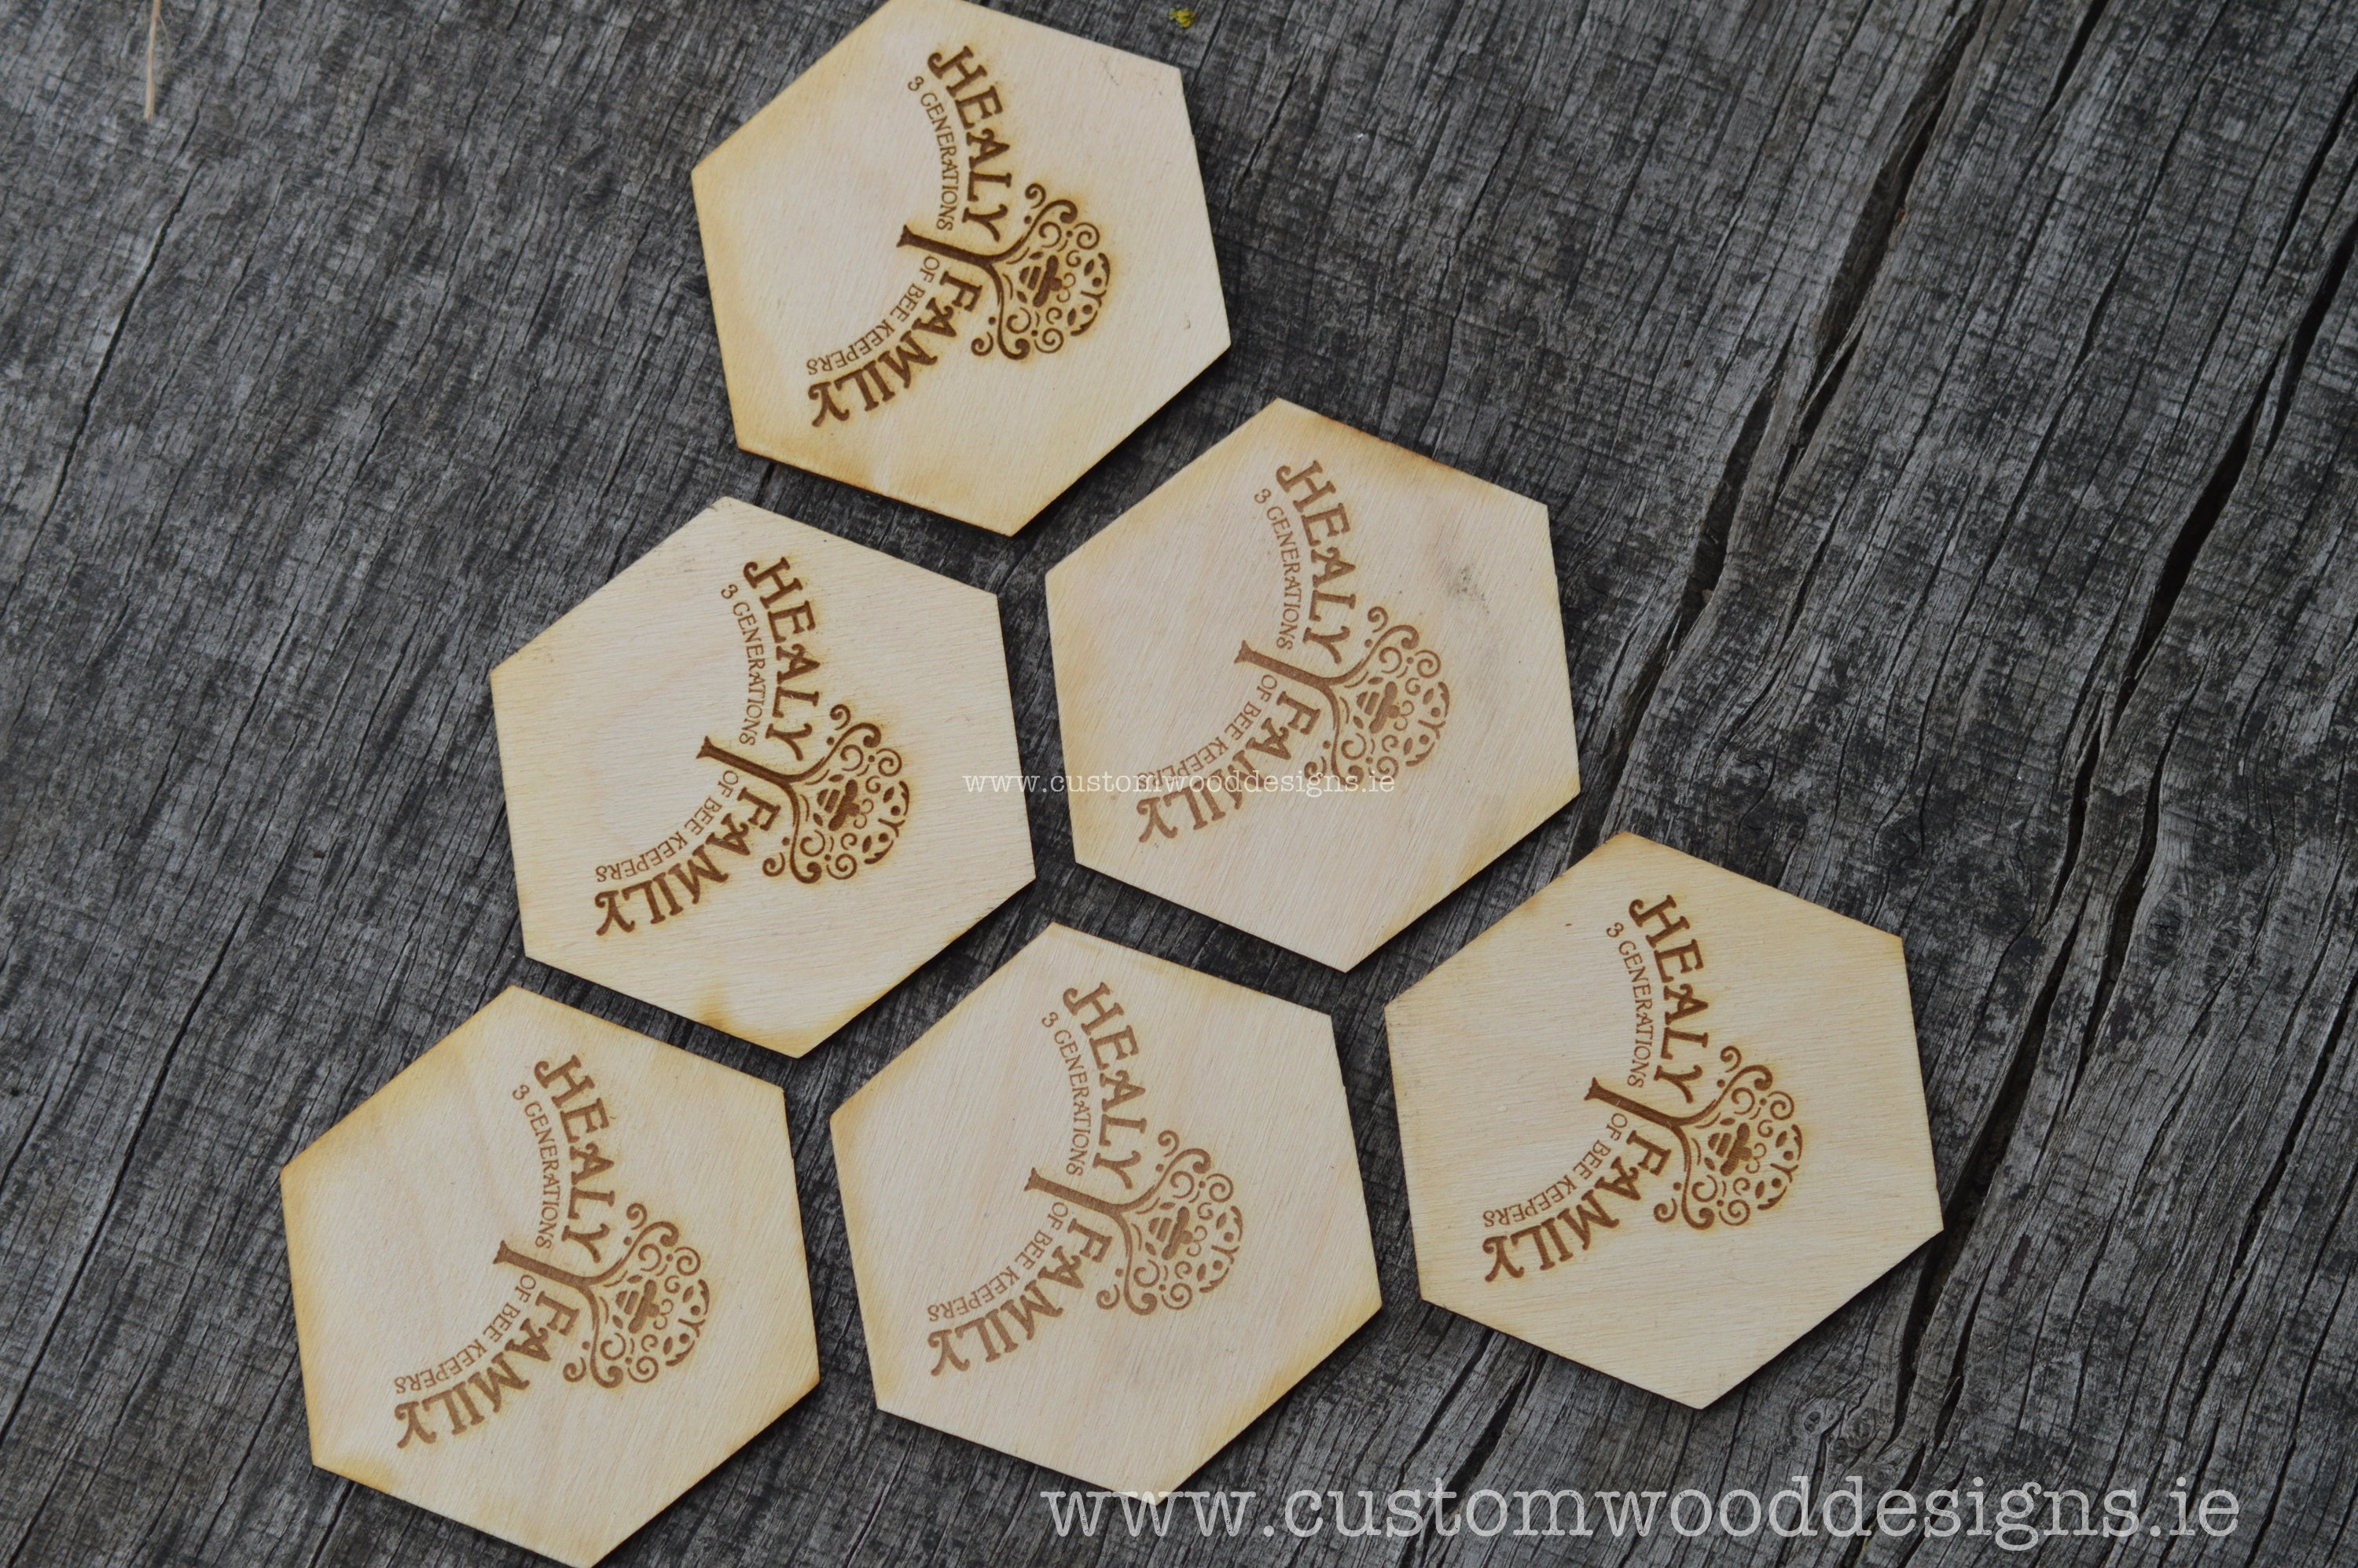 coasters wooden coasters with name personalised coasters  pub caosters reatuarant coasters gift coasters present coasters laser cutting wedding coasters laser engraved logo coatsers ireland europ worldwide shiopping coasters personalised irish company coasters Custom Wood Designs gary byrne woodworking branding manufacture laser engraving services cnc speciality boxes packaging pos point of sale fsdu free standoing units trade stands festival structure trade sta (59